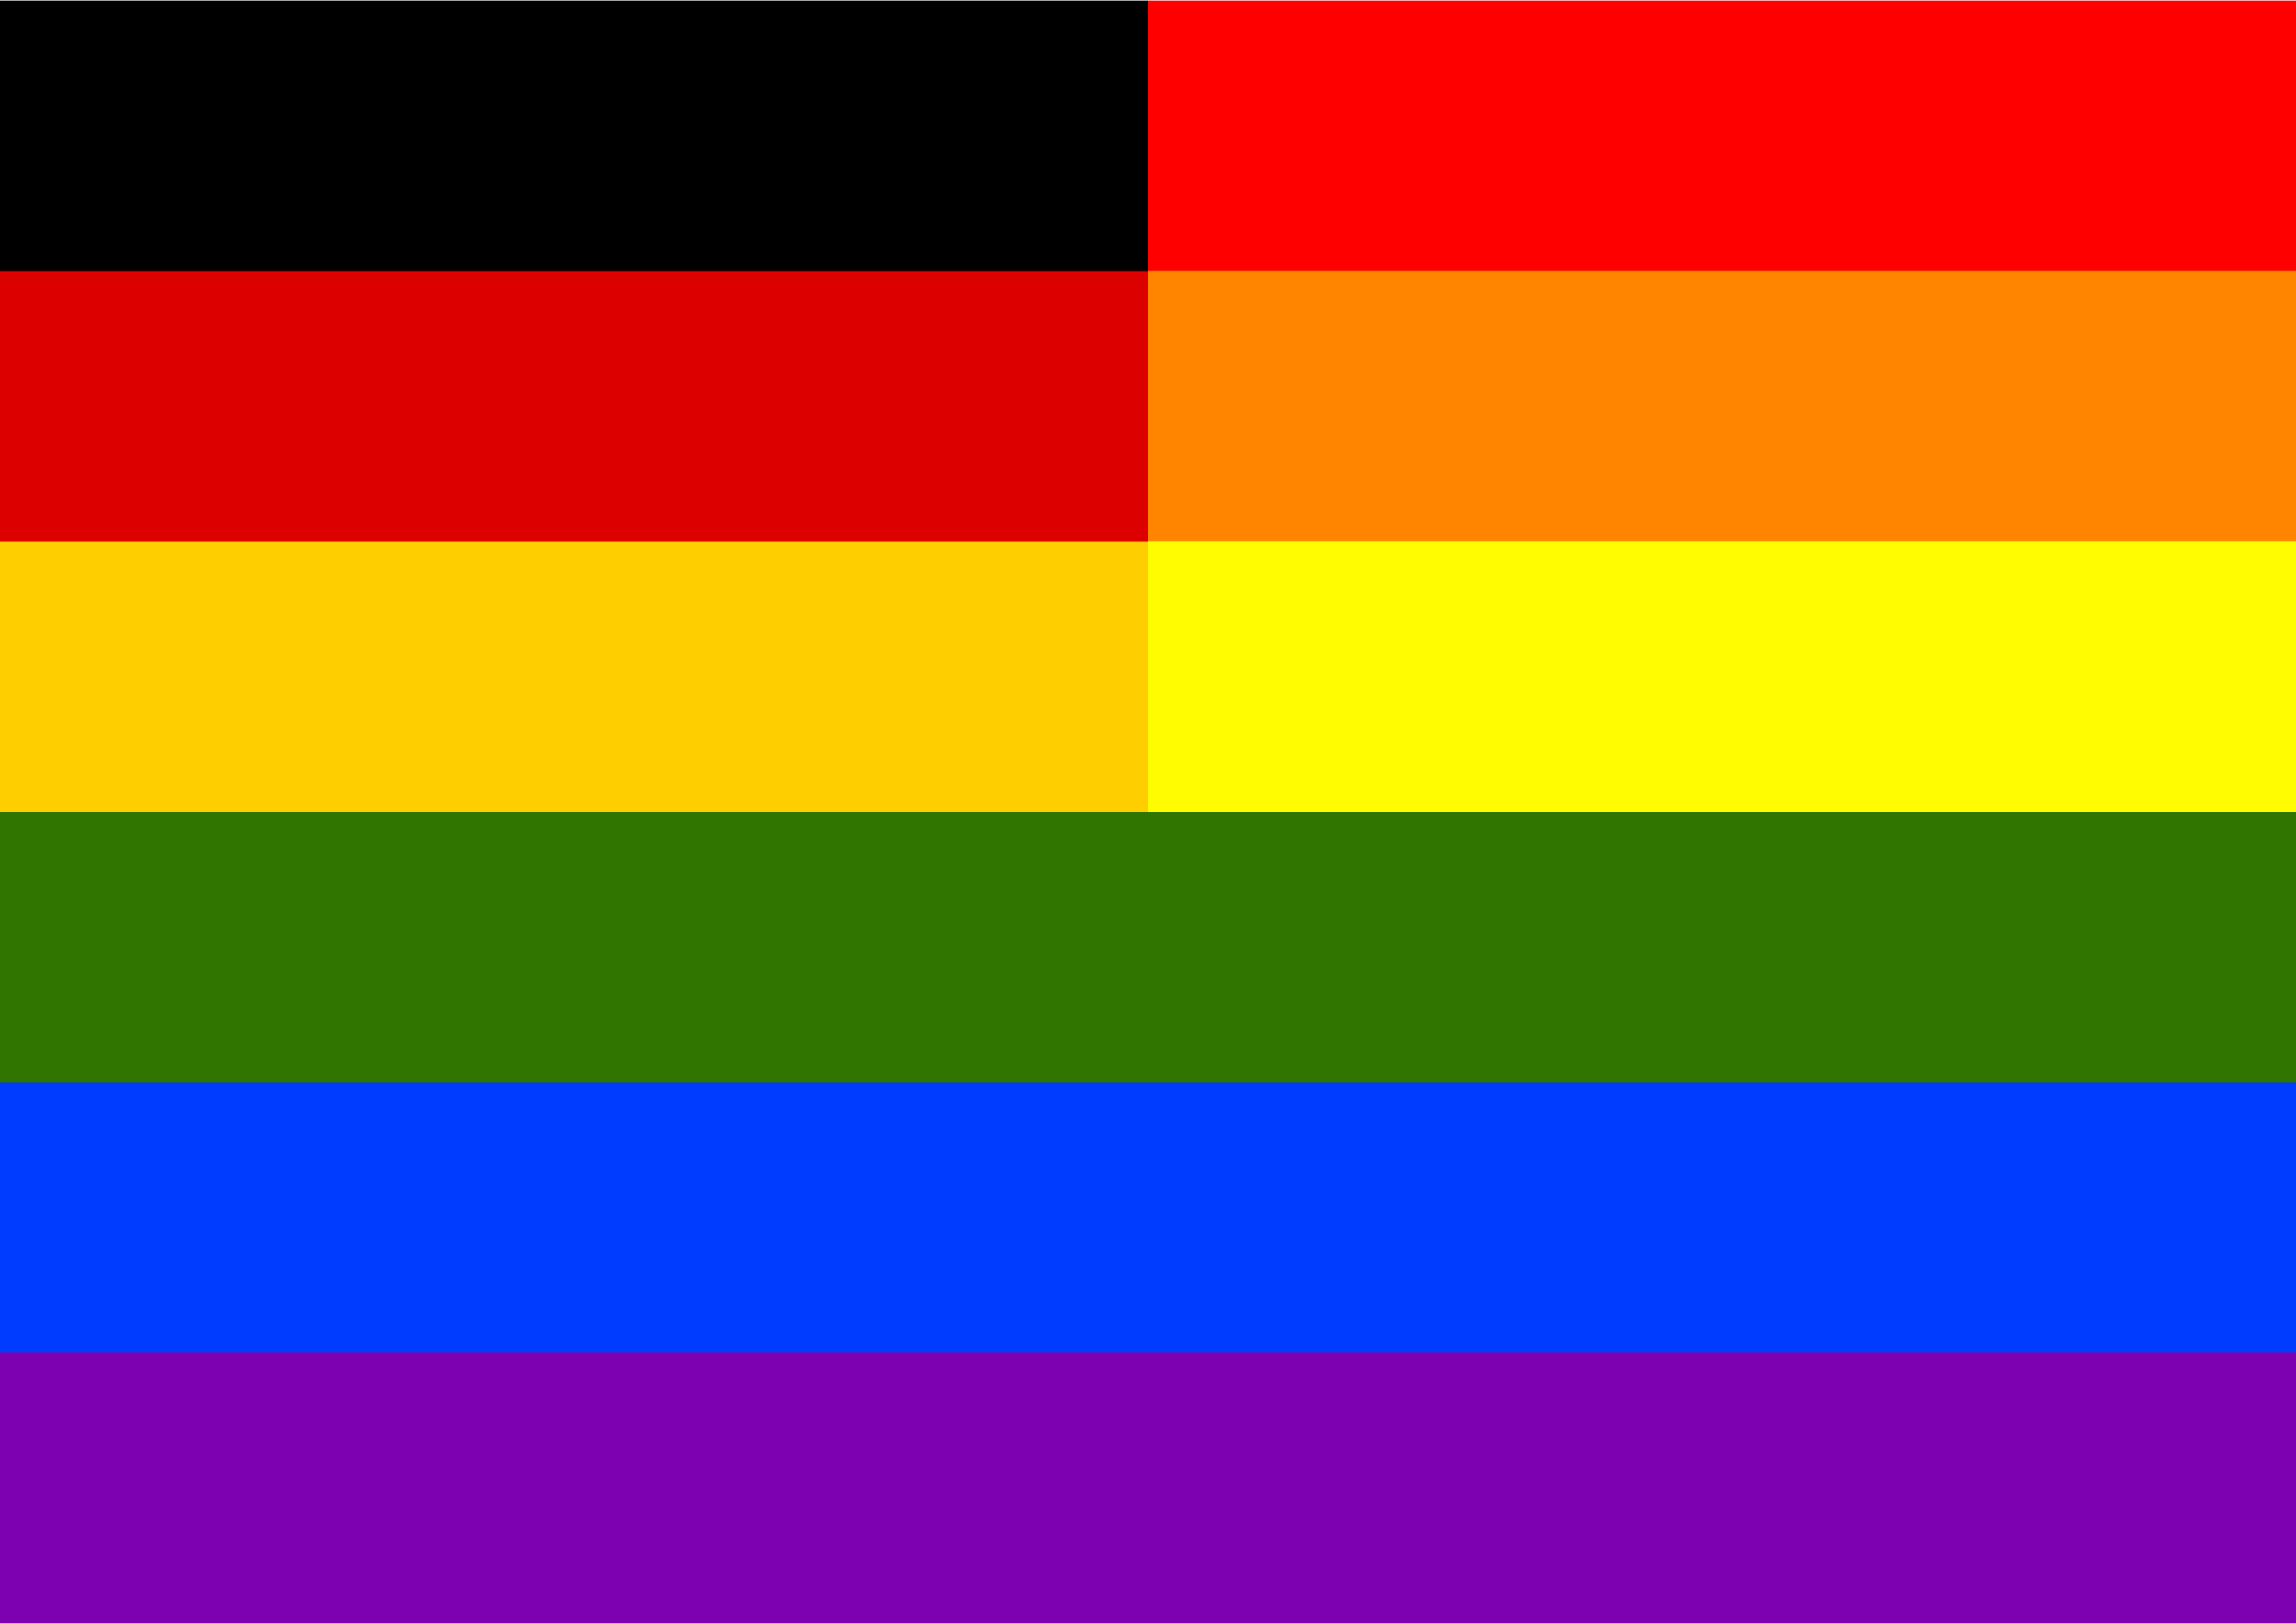 Rainbow Flag Germany by Hirnlichtspiele